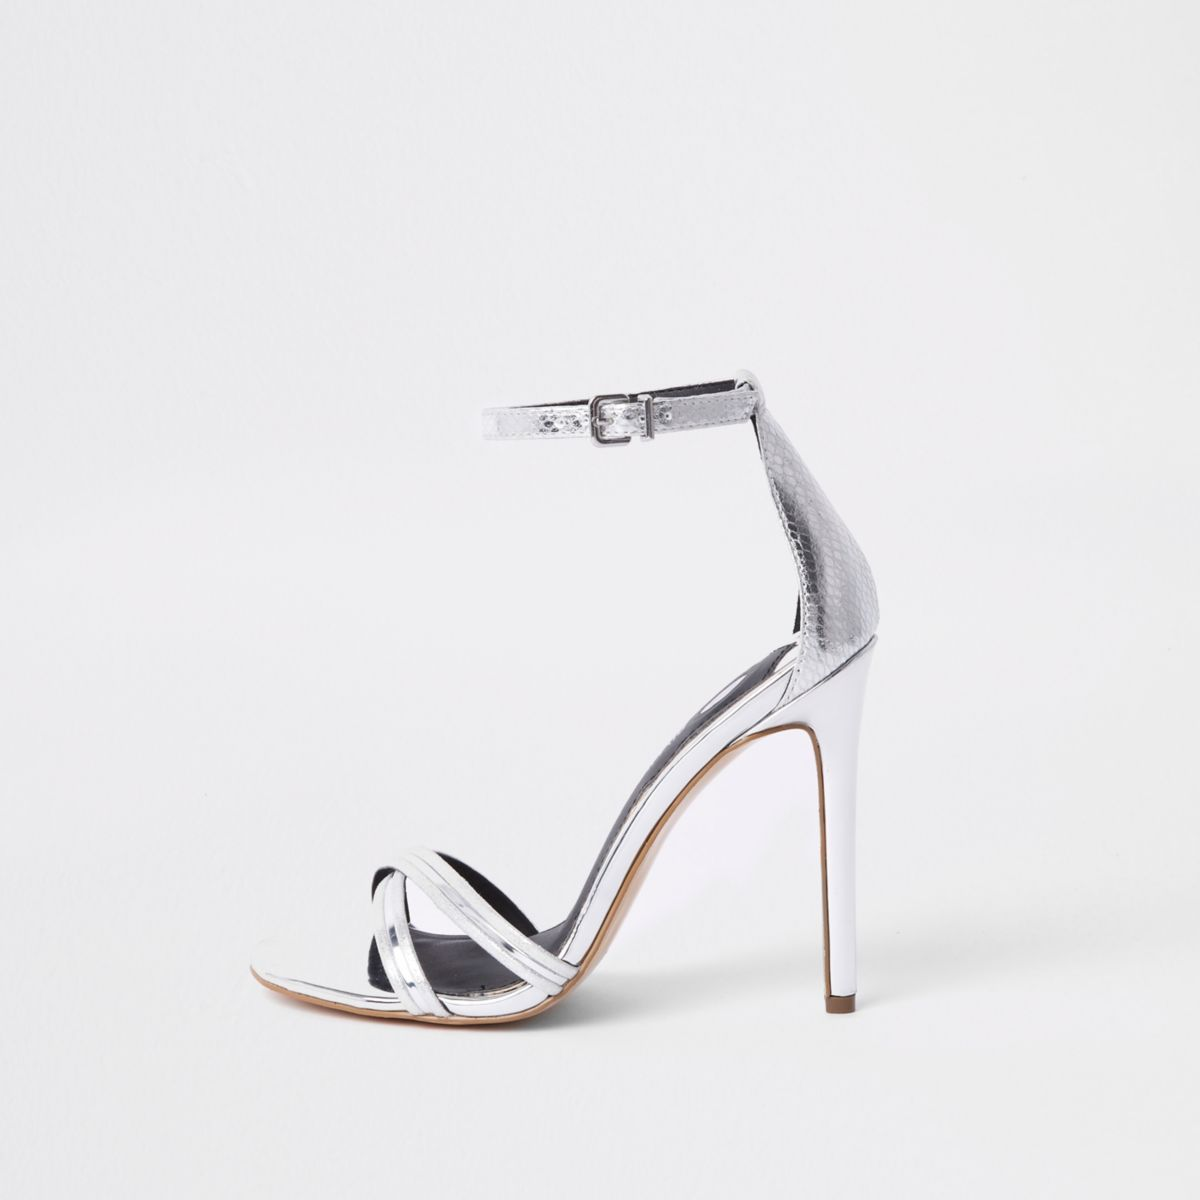 ​Silver metallic barely there sandals​